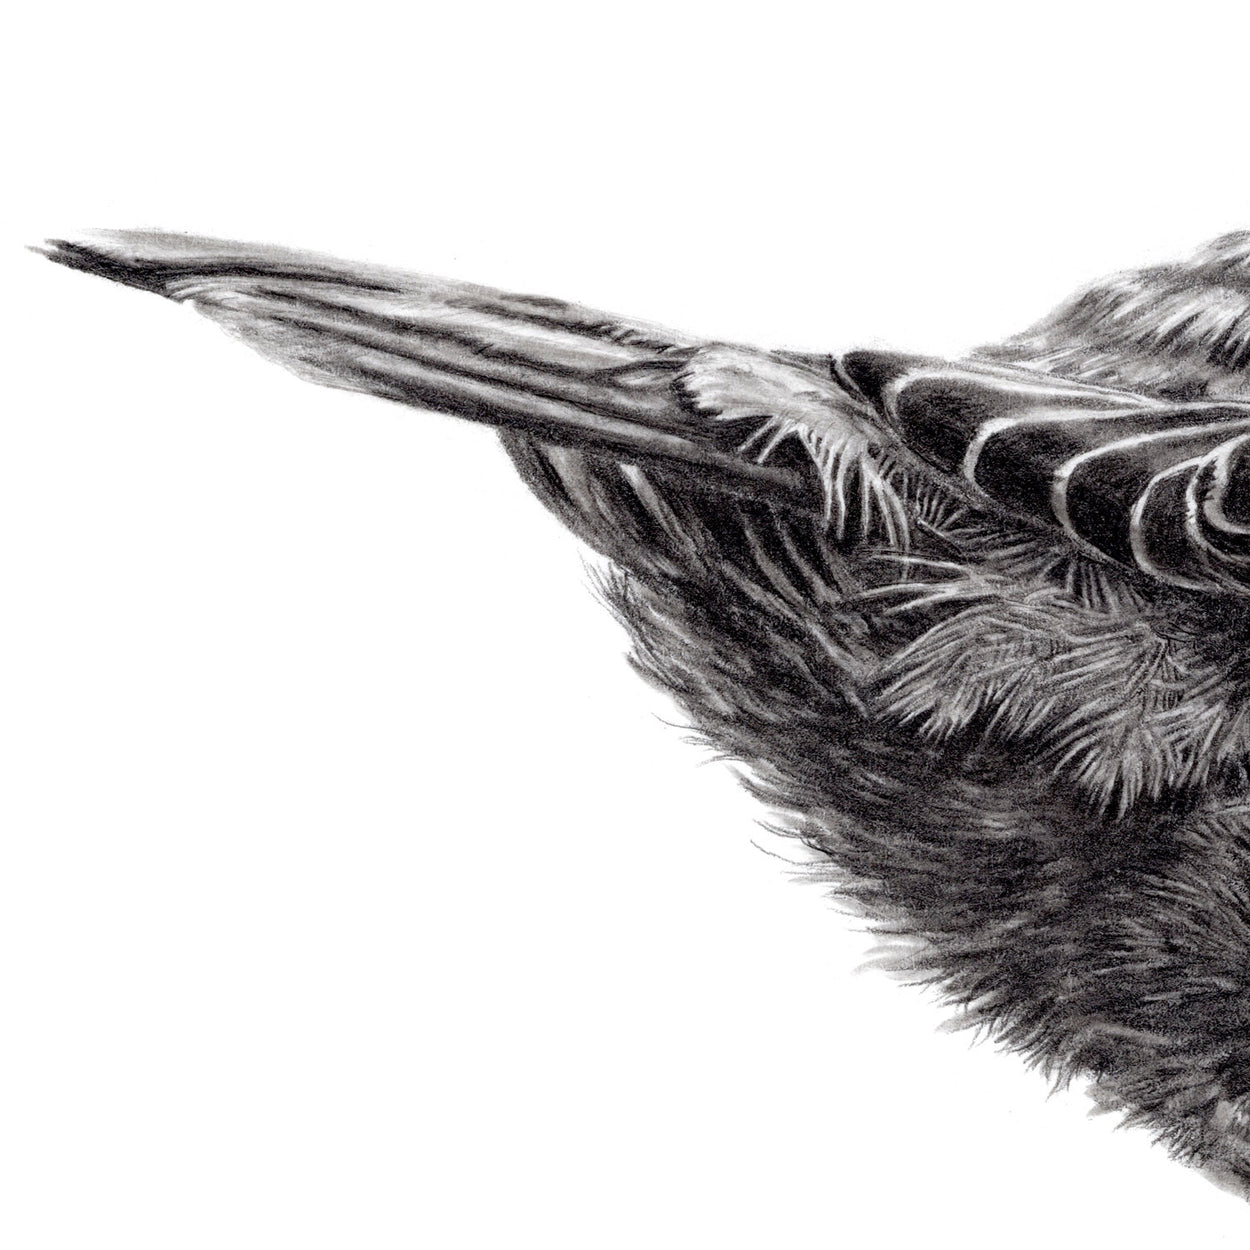 Dipper Bird Feathers Drawing Close-up - The Thriving Wild